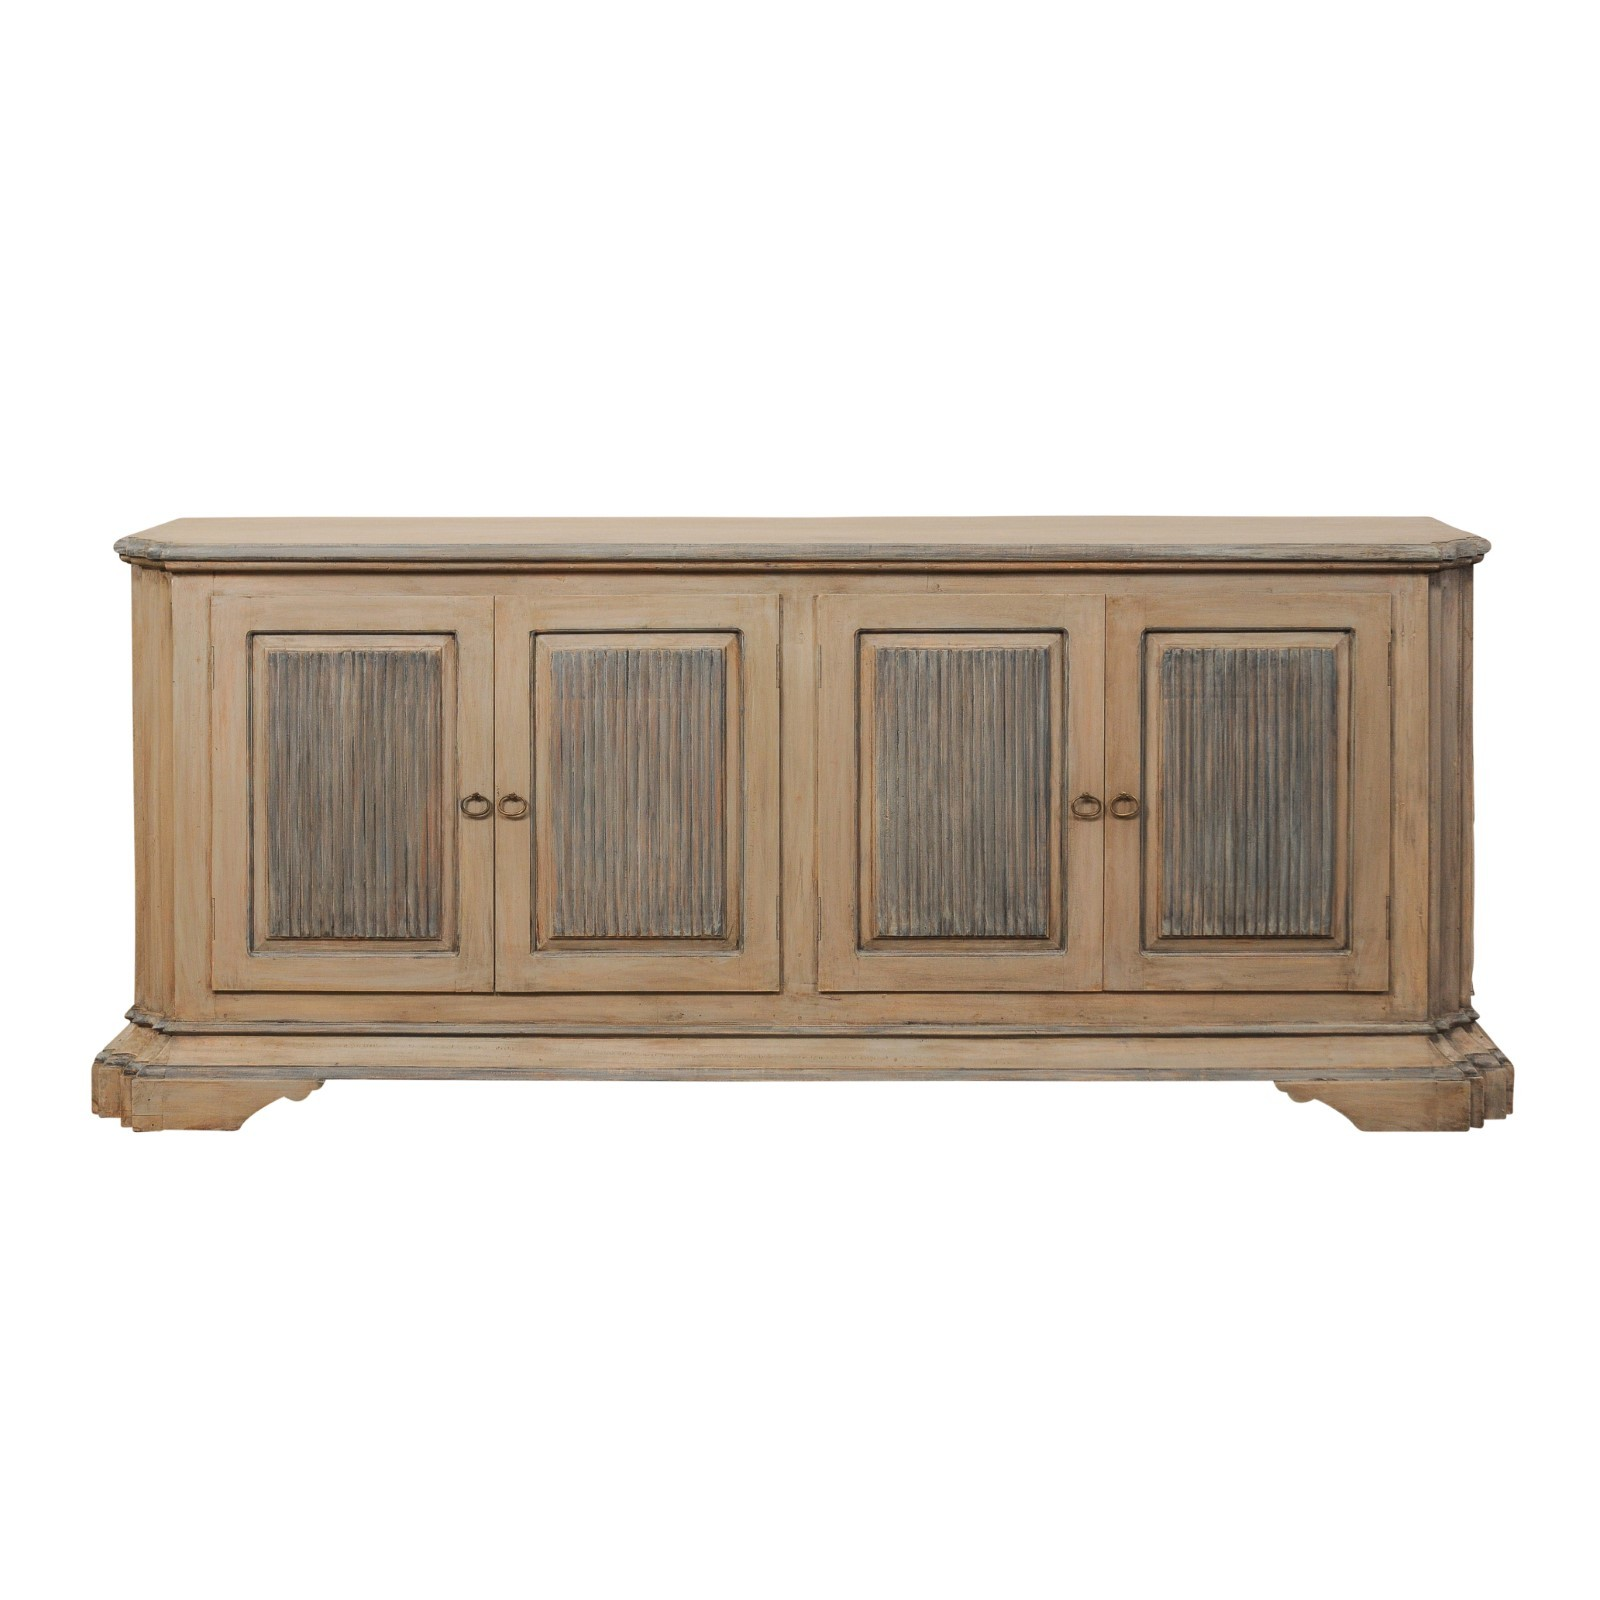 Long Italian Style Buffet Cabinet, 8+ft